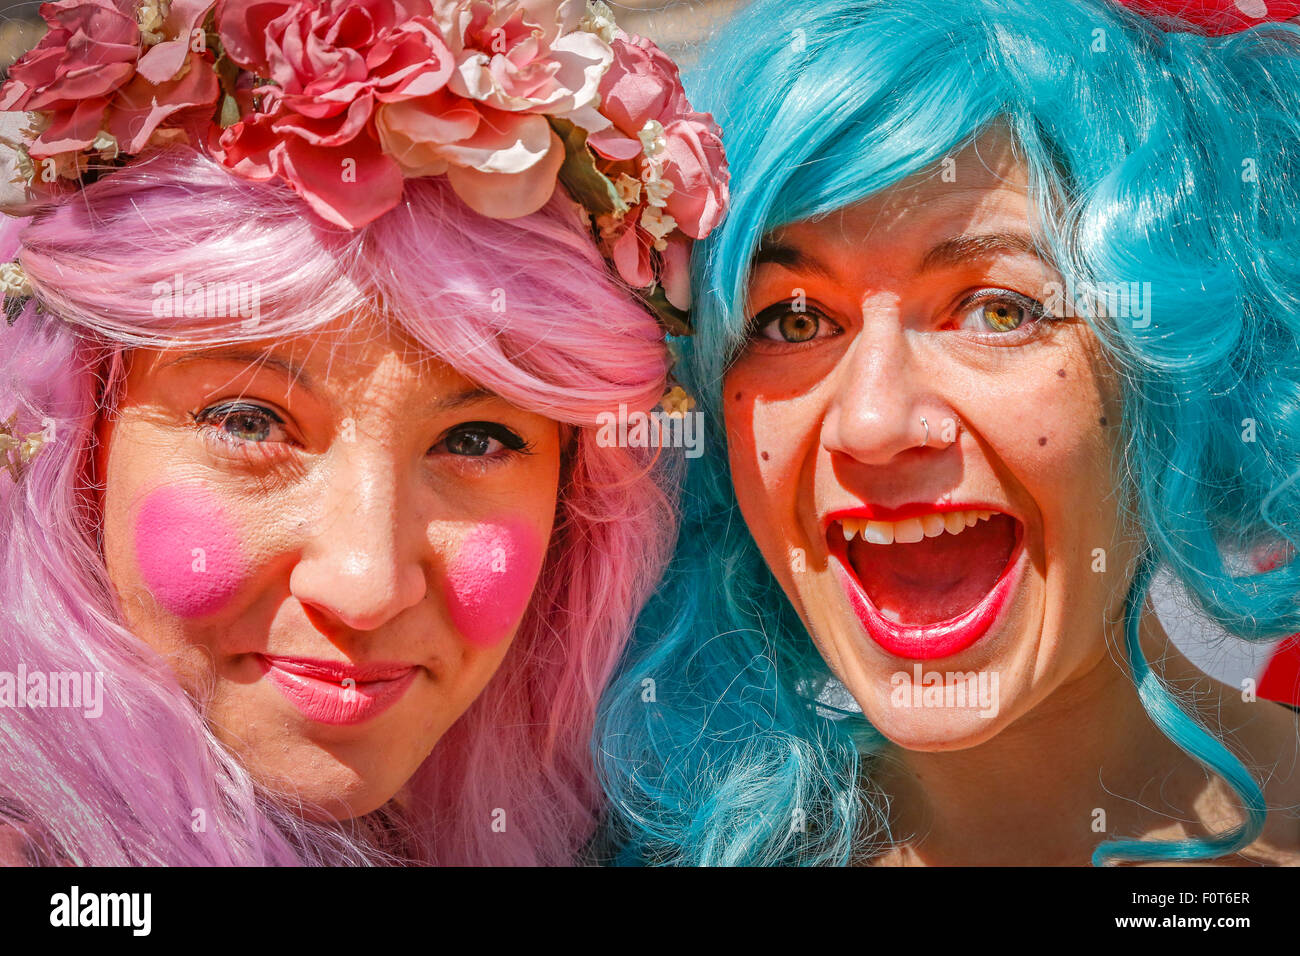 Two actresses, Anja Conti and Laura Jeffs, in costume, advertising the show called 'Floss and Boo' at the - Stock Image